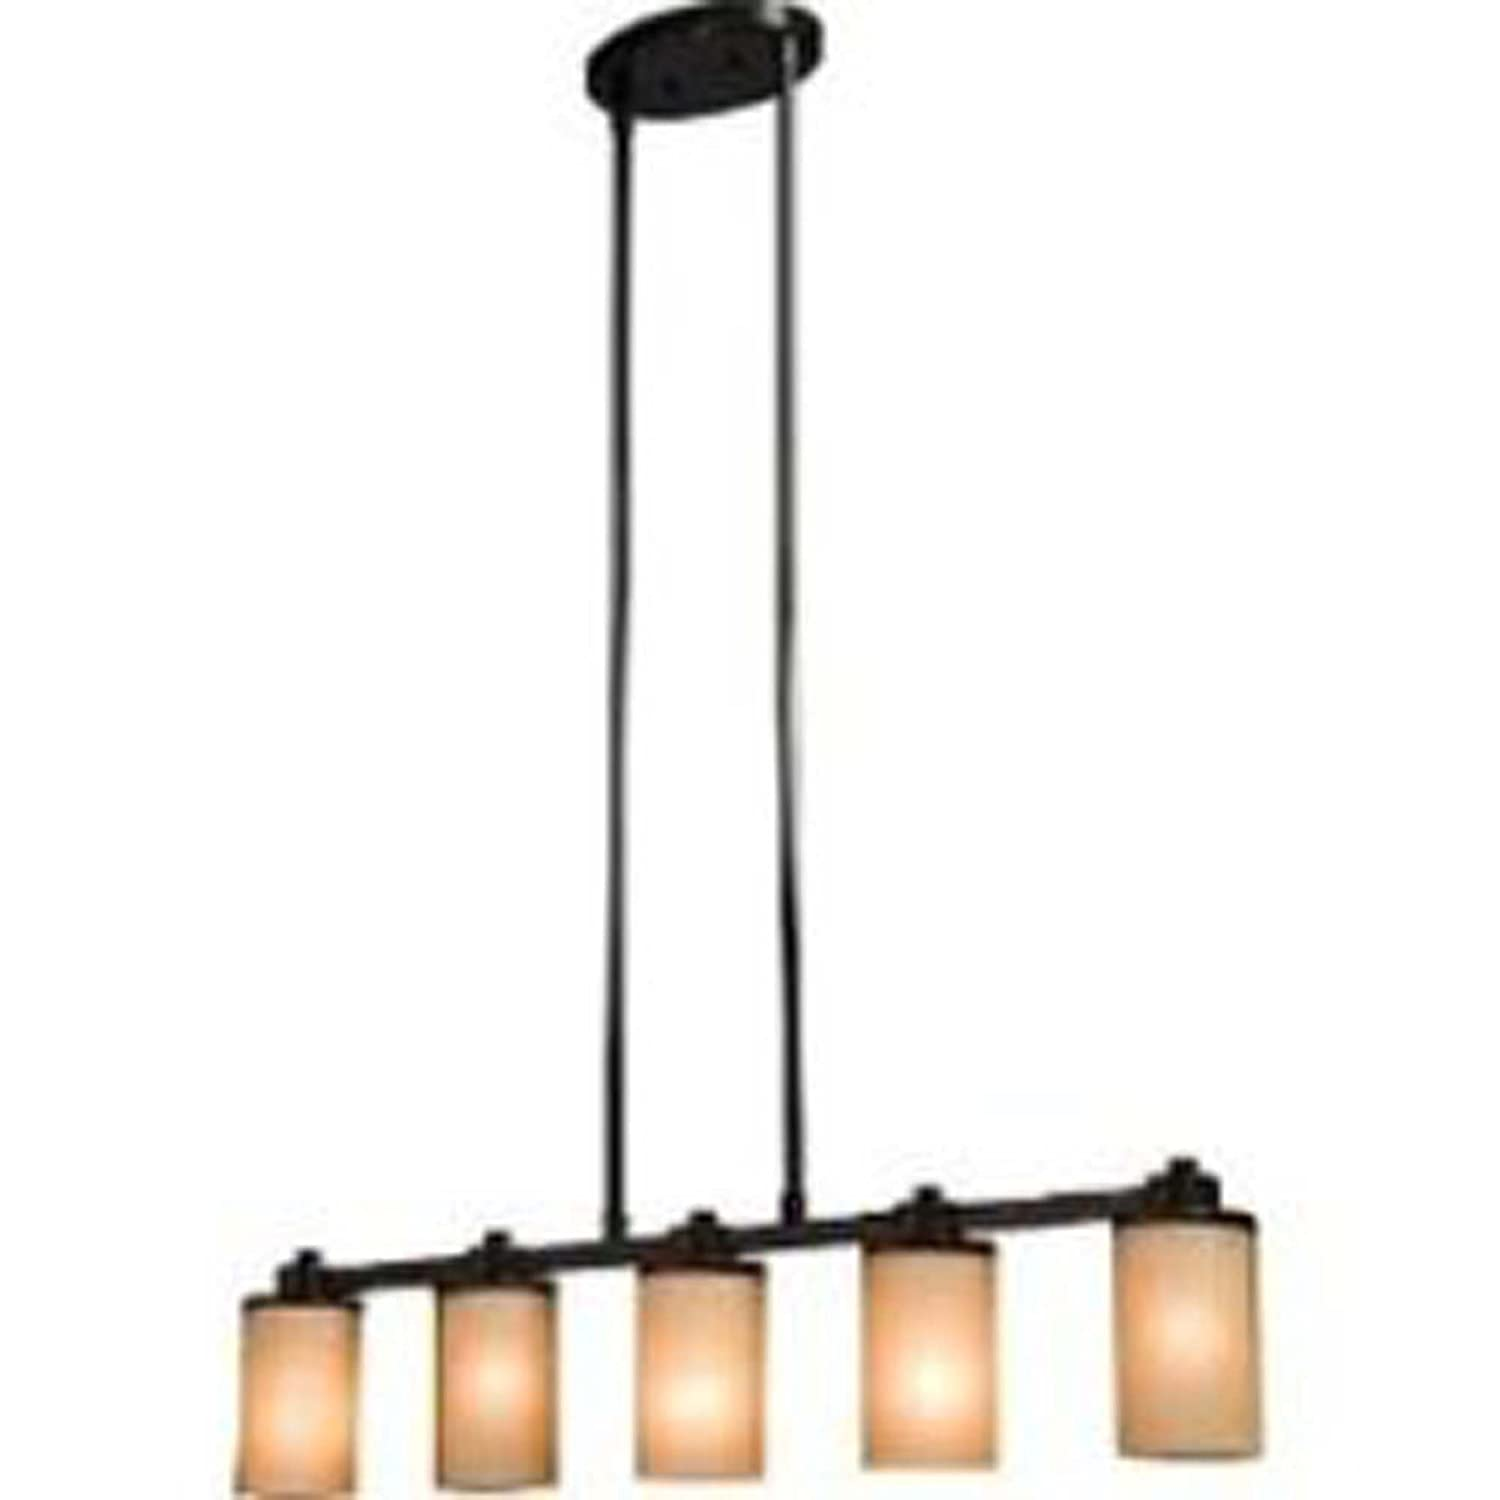 Artcraft Lighting Parkdale 5 Light Island Light, Oil Rubbed Bronze   Island Light  Fixtures   Amazon.com